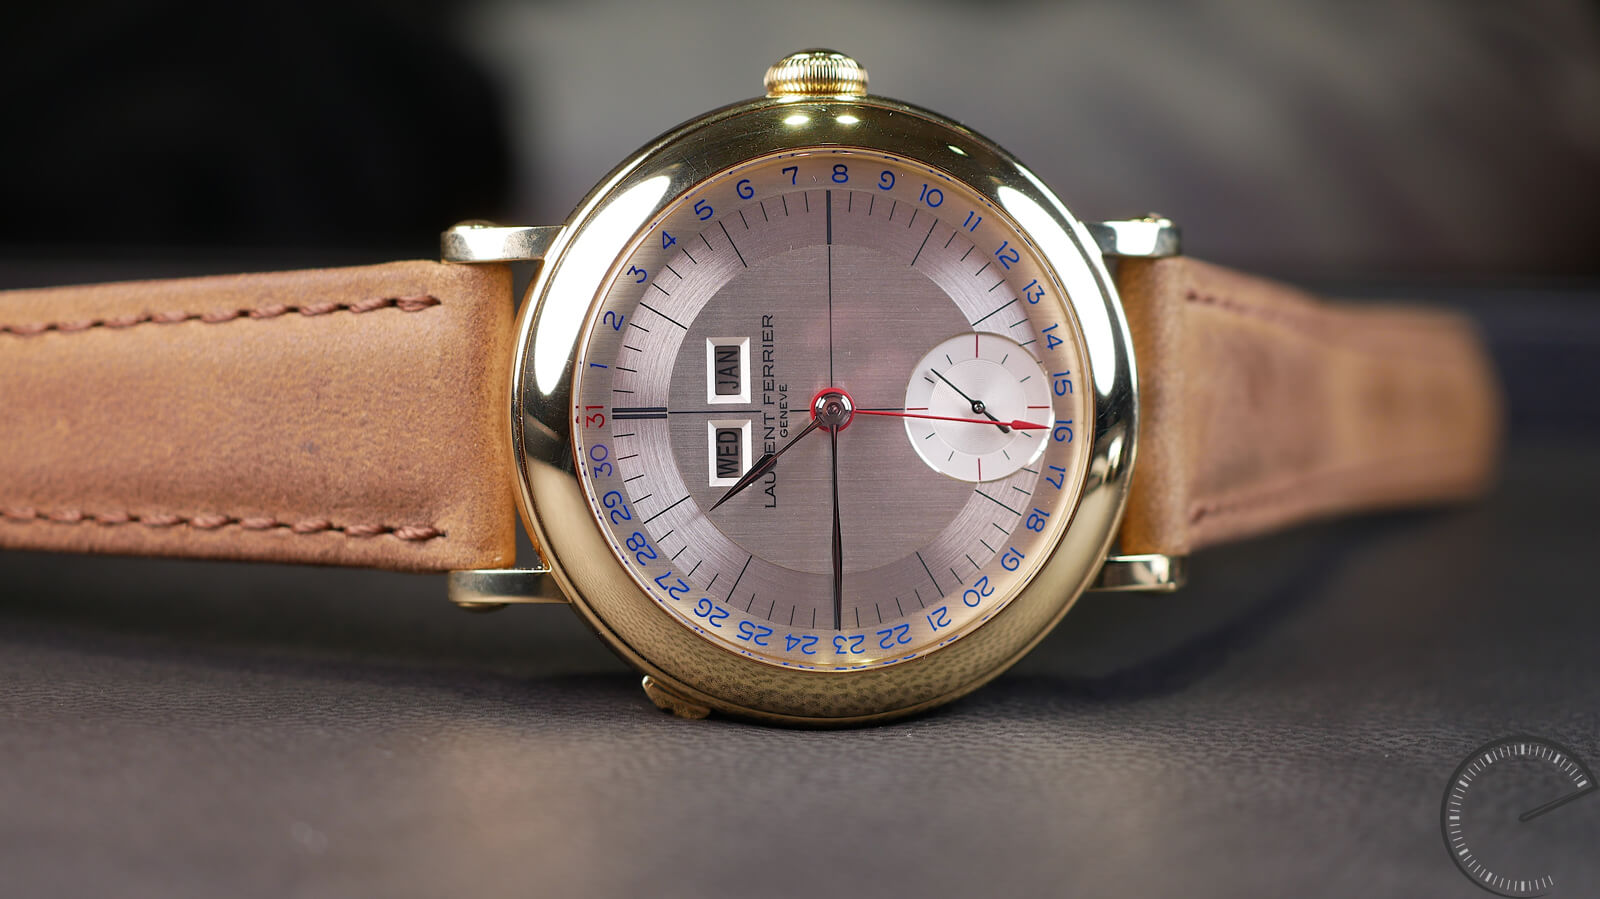 Laurent Ferrier Galet Annual Calendar School Piece featuring the brands fifth exclusive calibre, the LF126.01